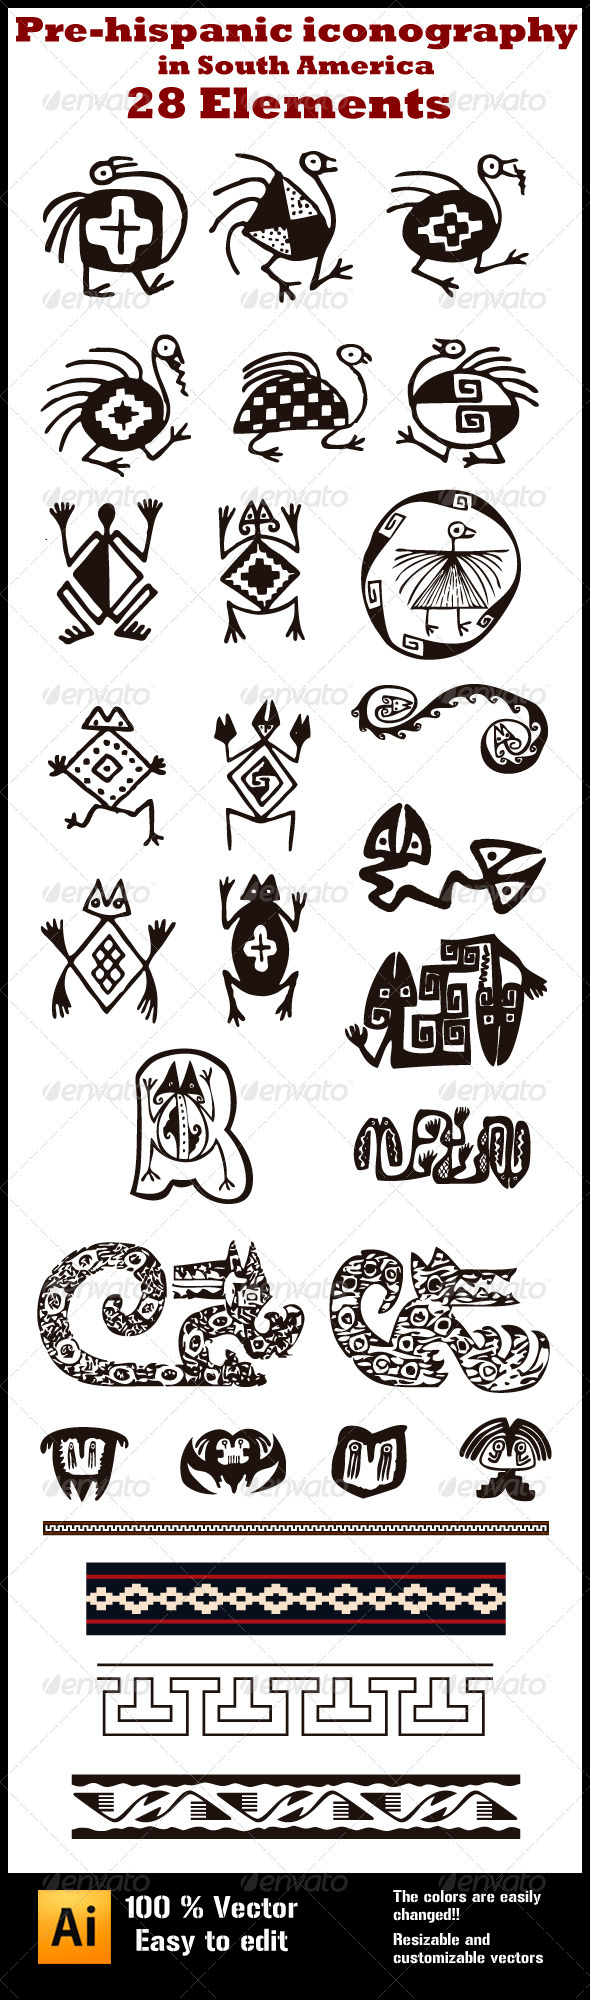 GraphicRiver Pre-hispanic Iconography in South-America 4027130